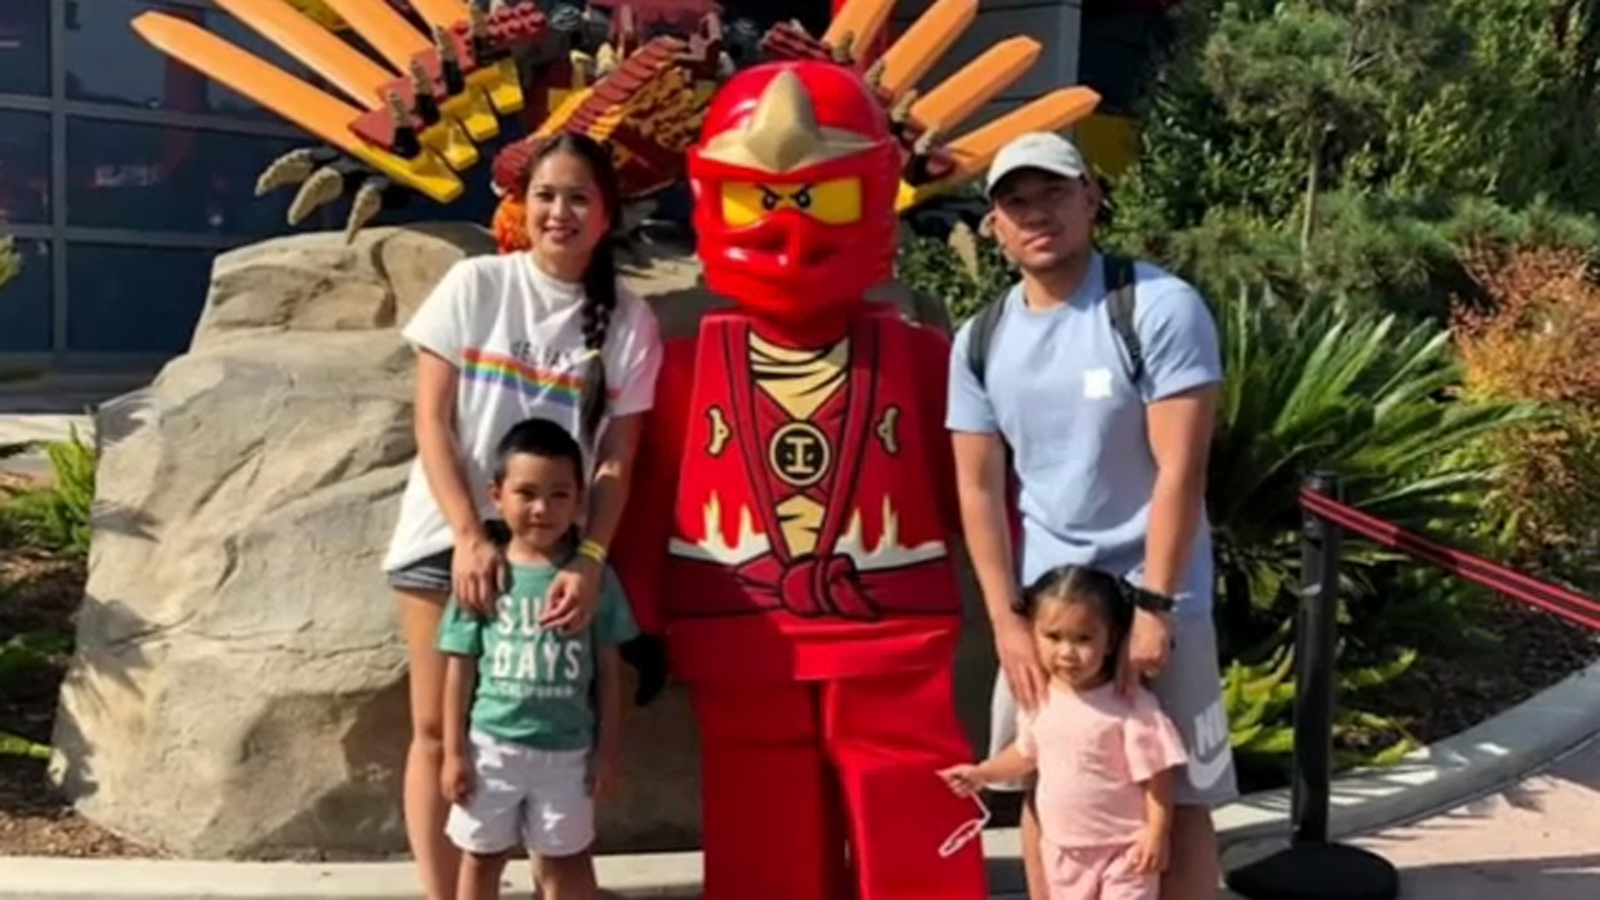 Legoland visitor catches peeping tom while she, toddler were changing in theme park